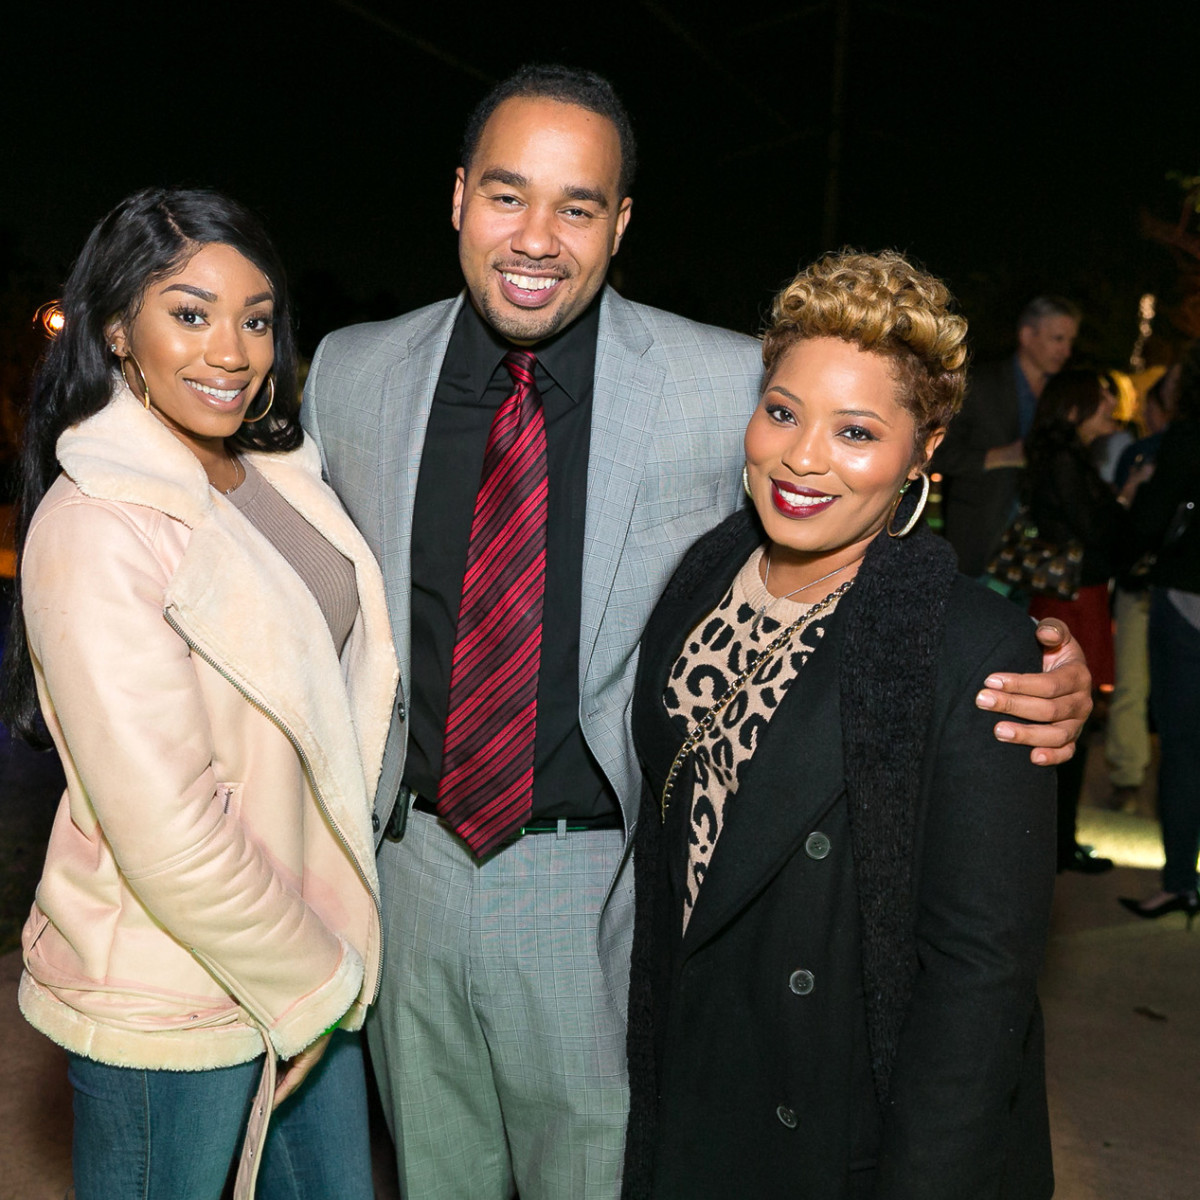 Houston, Memorial Park Bridge Bash, November 2017, Courtney Mobley, Julian Johnson, Charmaine Ollie